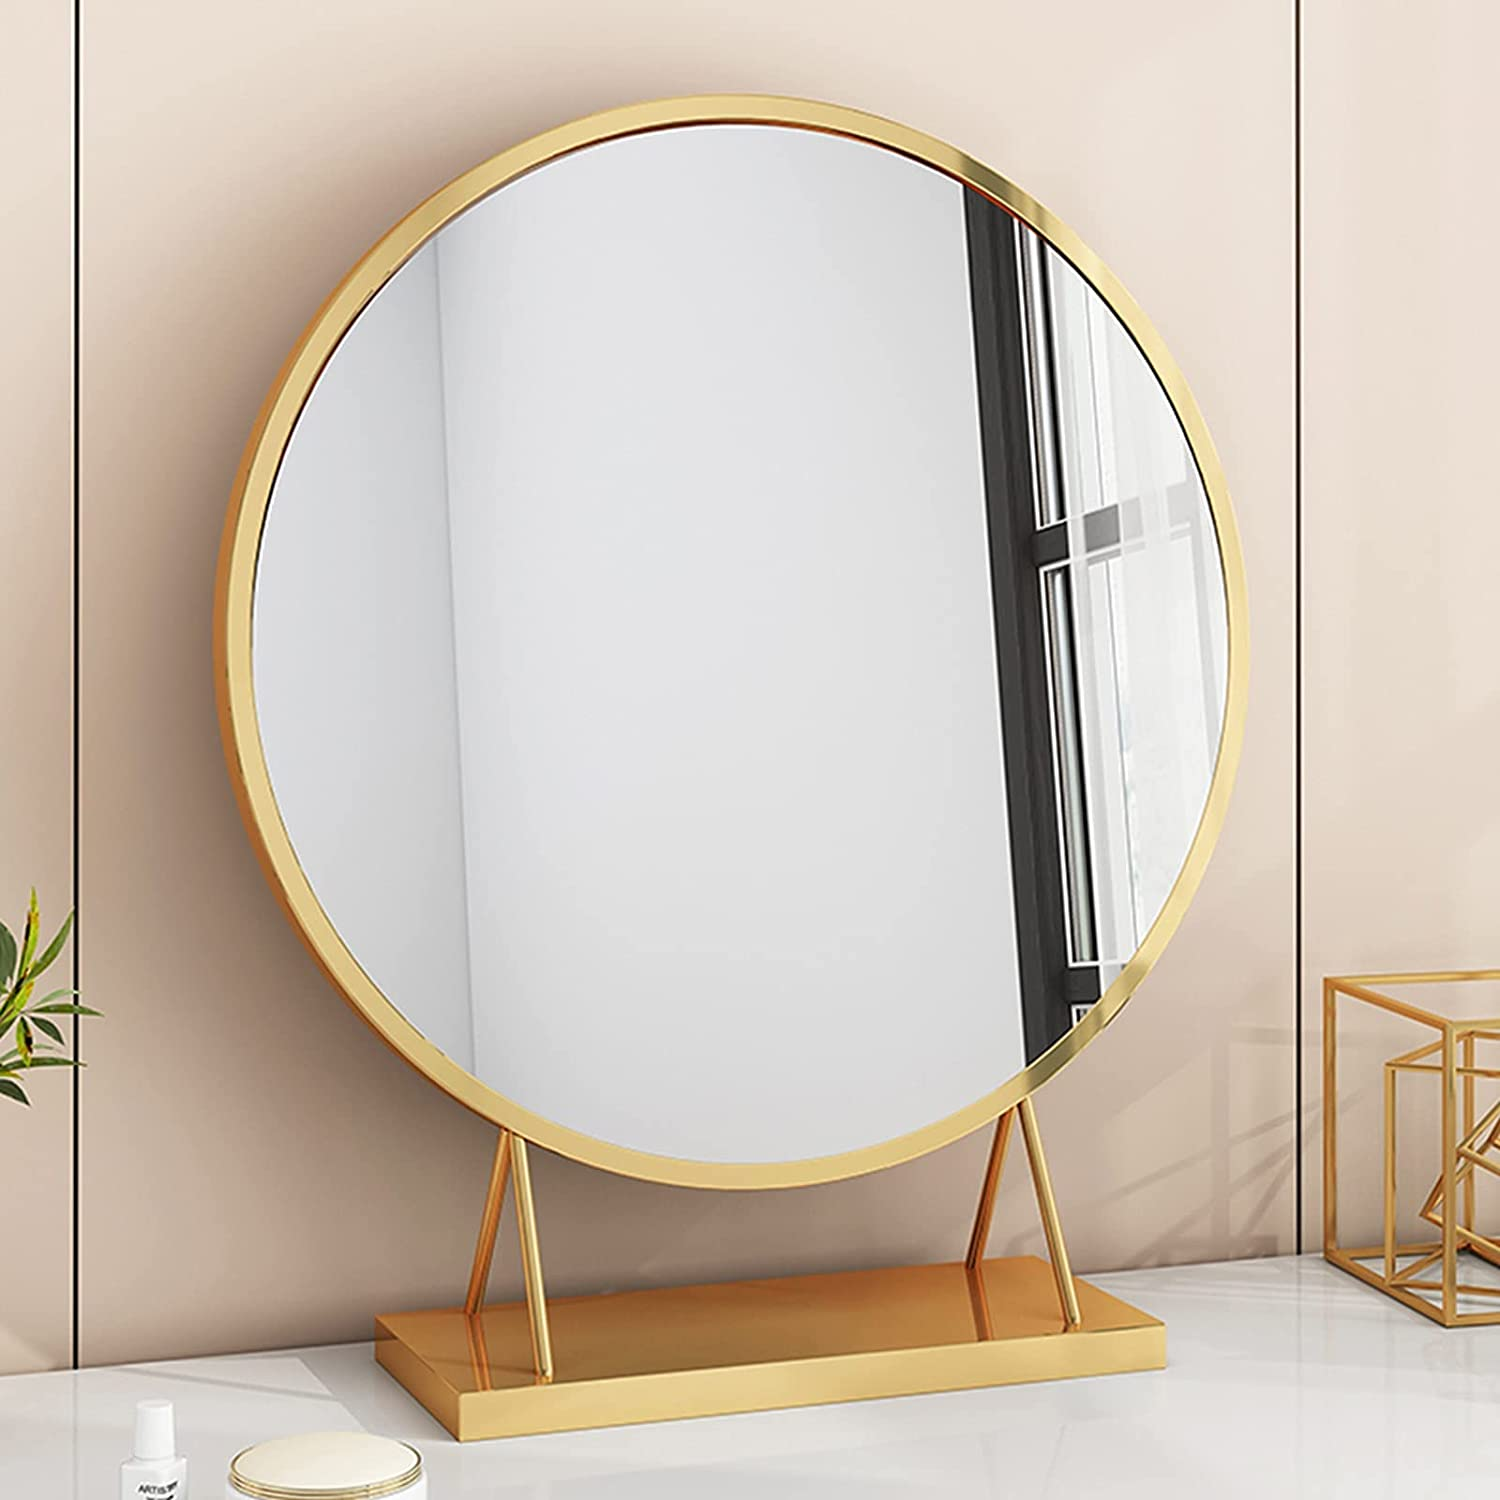 Trust Makeup Max 66% OFF Mirror Vanity fold Magnifica Mounted